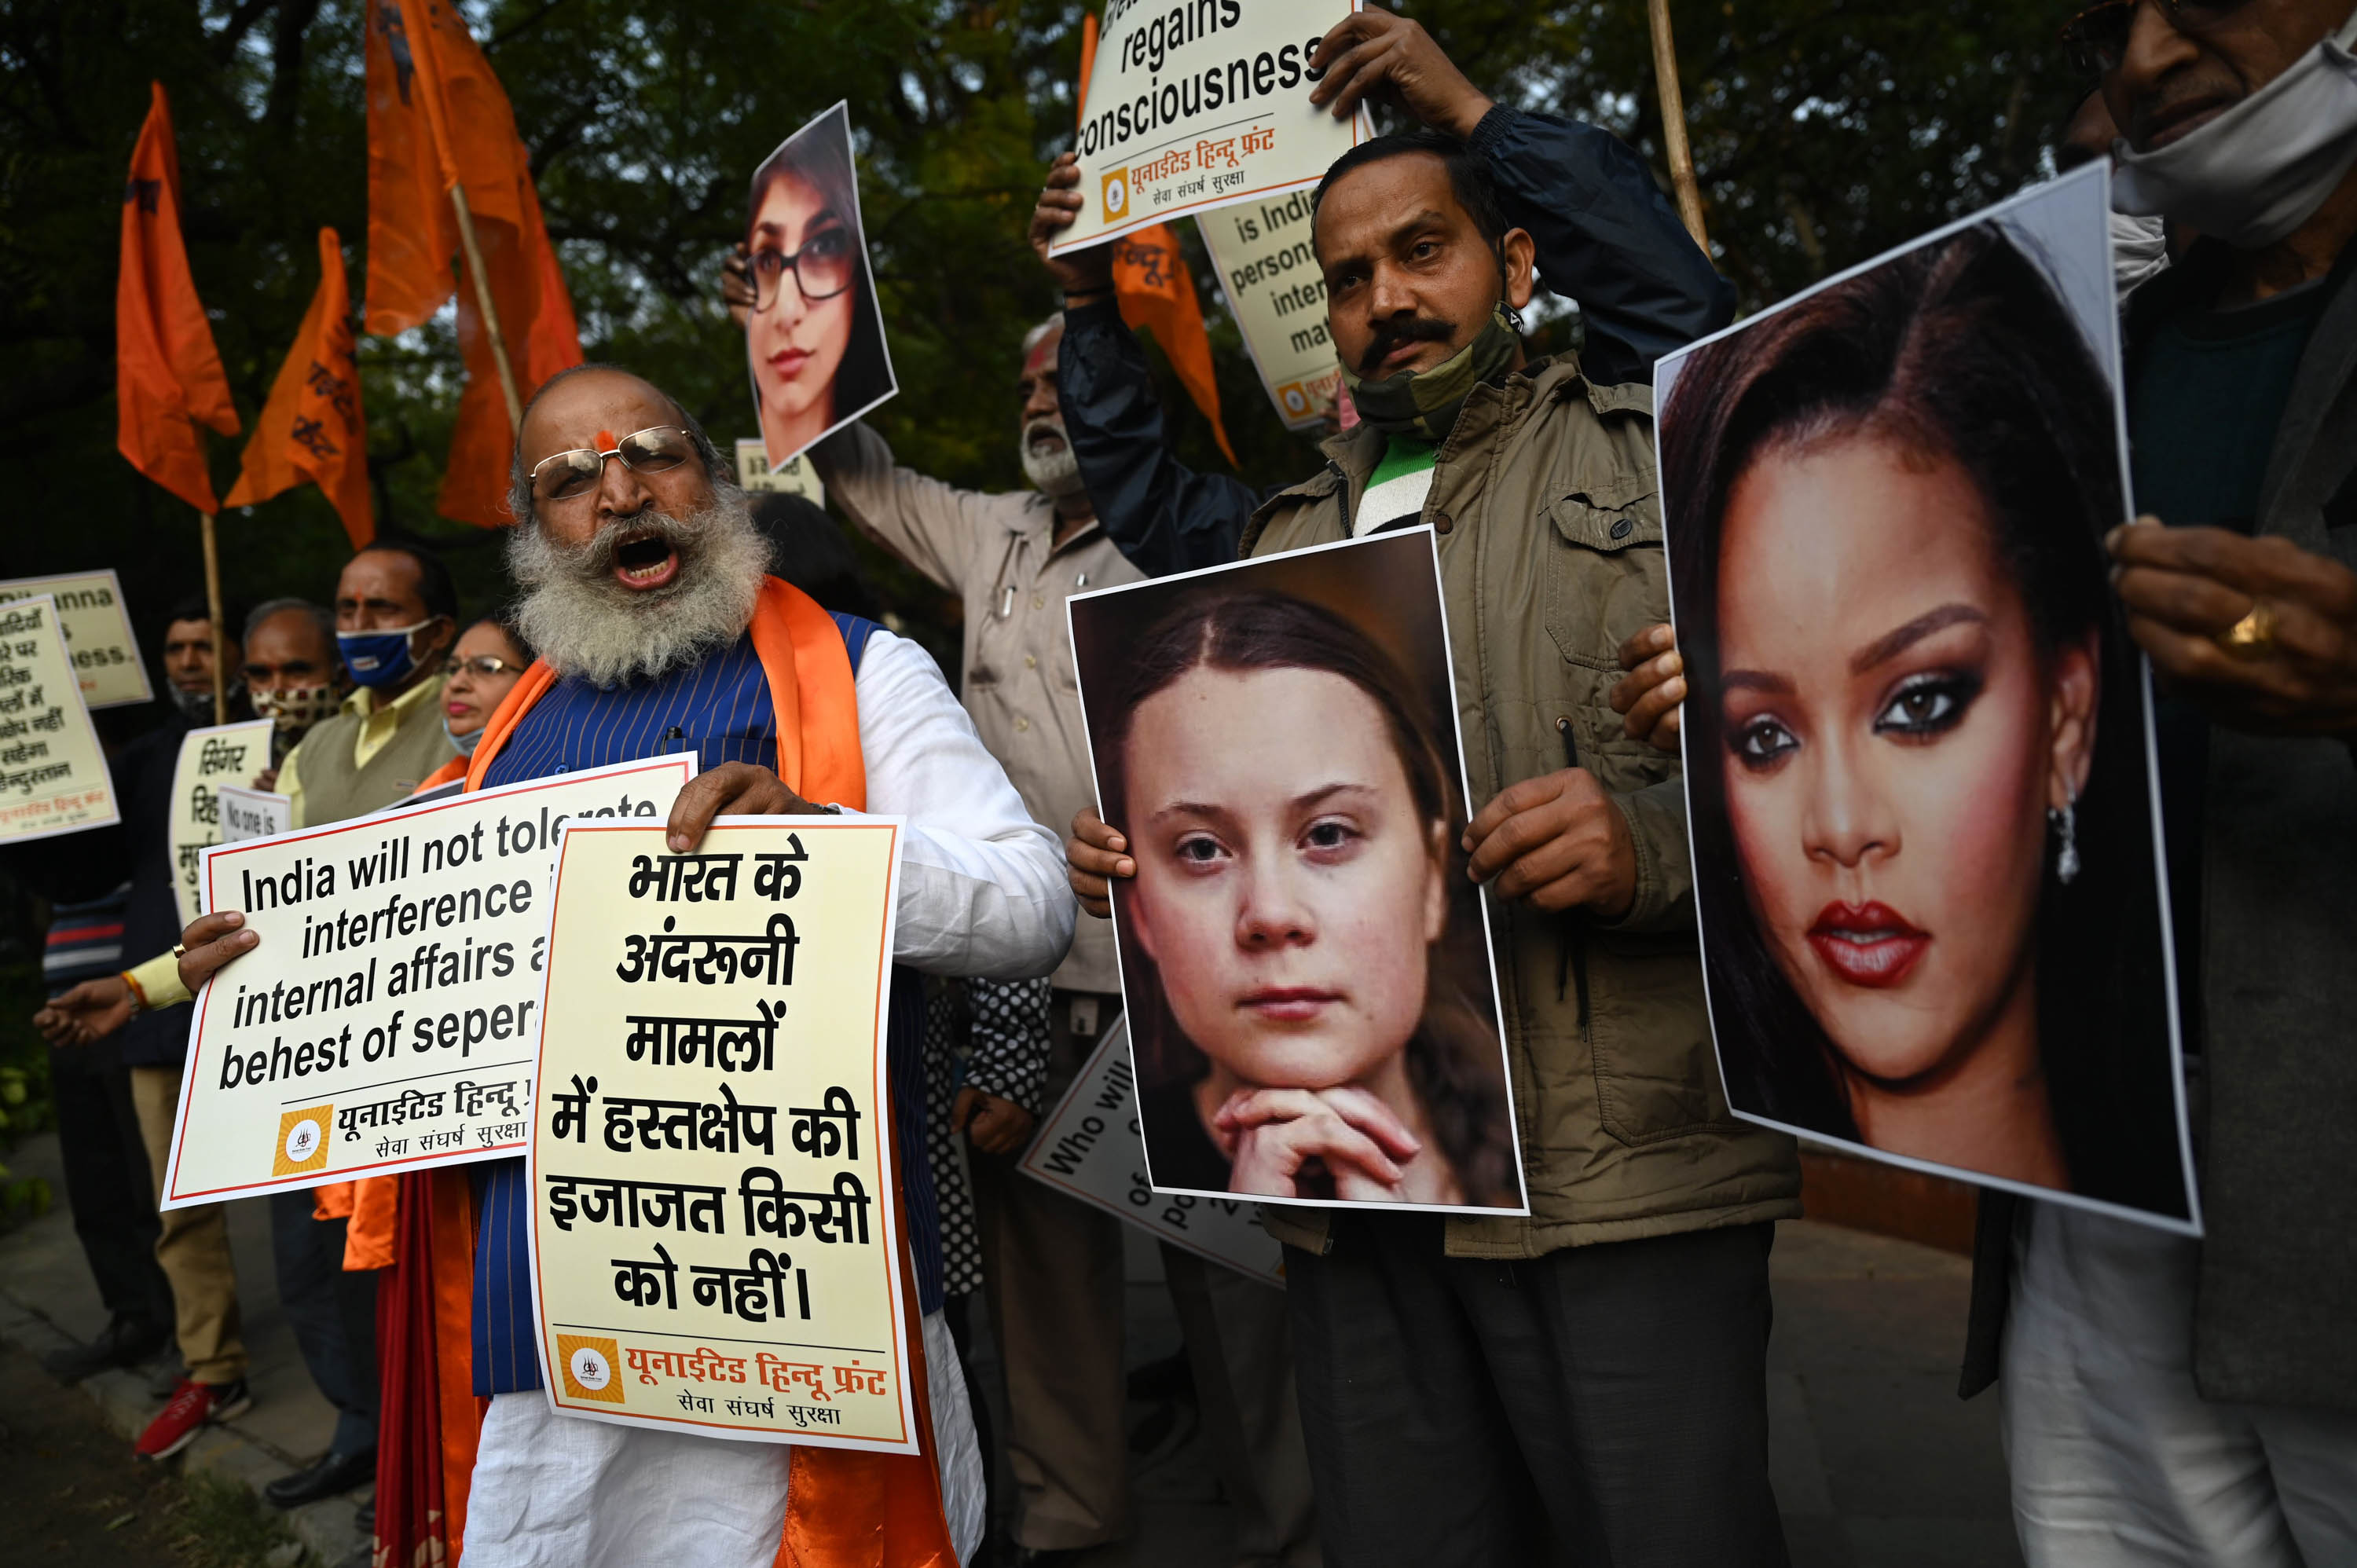 Rihanna's call to support Indian farmers quickly embraced by other celebrities